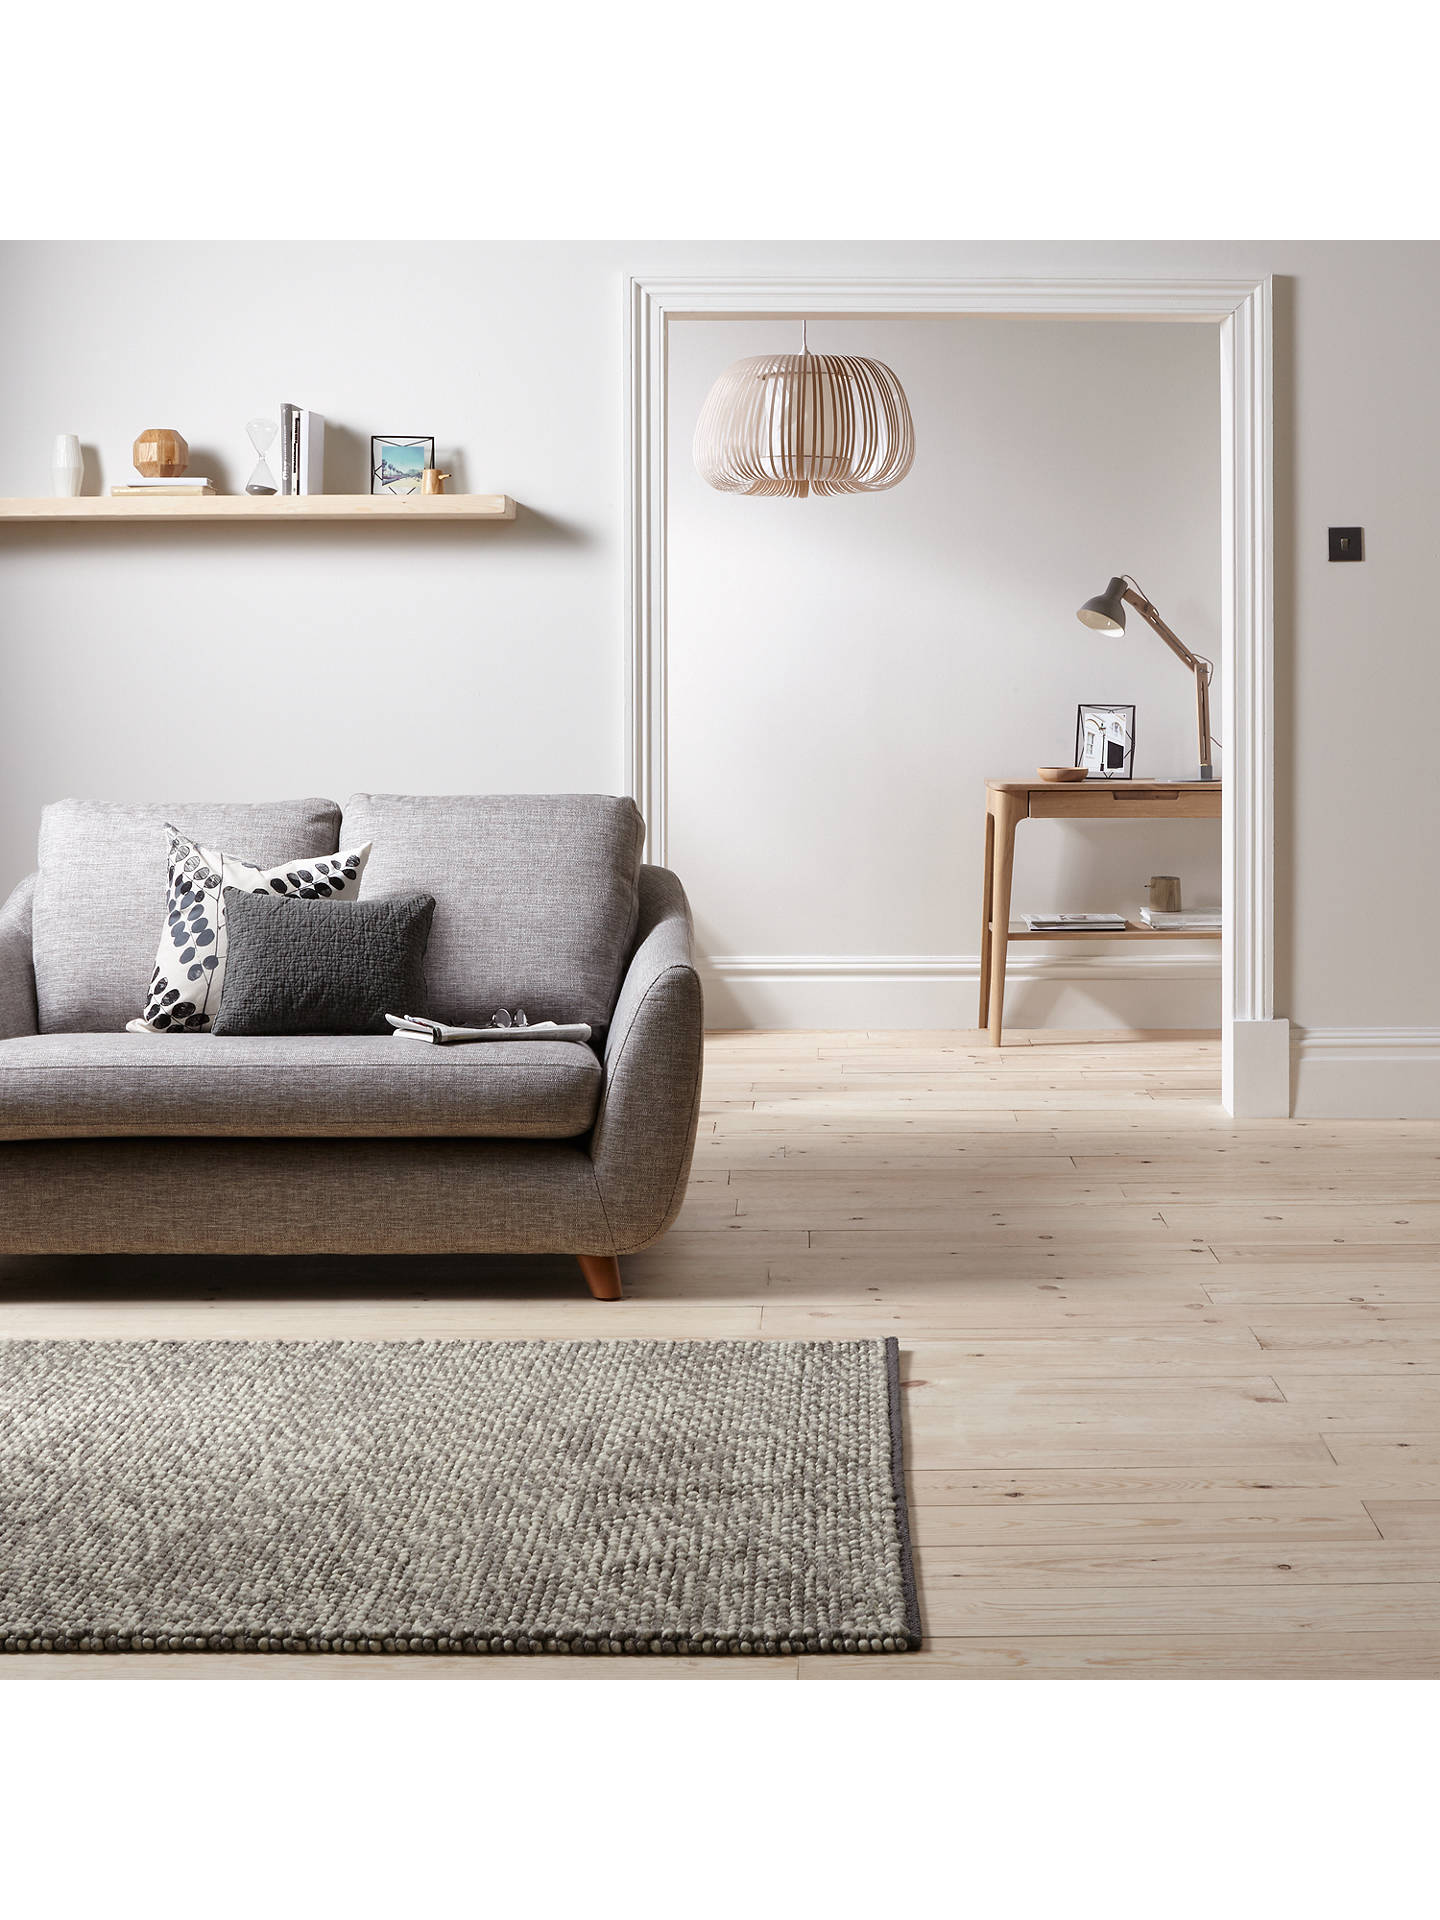 BuyJohn Lewis & Partners Dolly Mixture Rug, Natural, L180 x W120cm Online at johnlewis.com